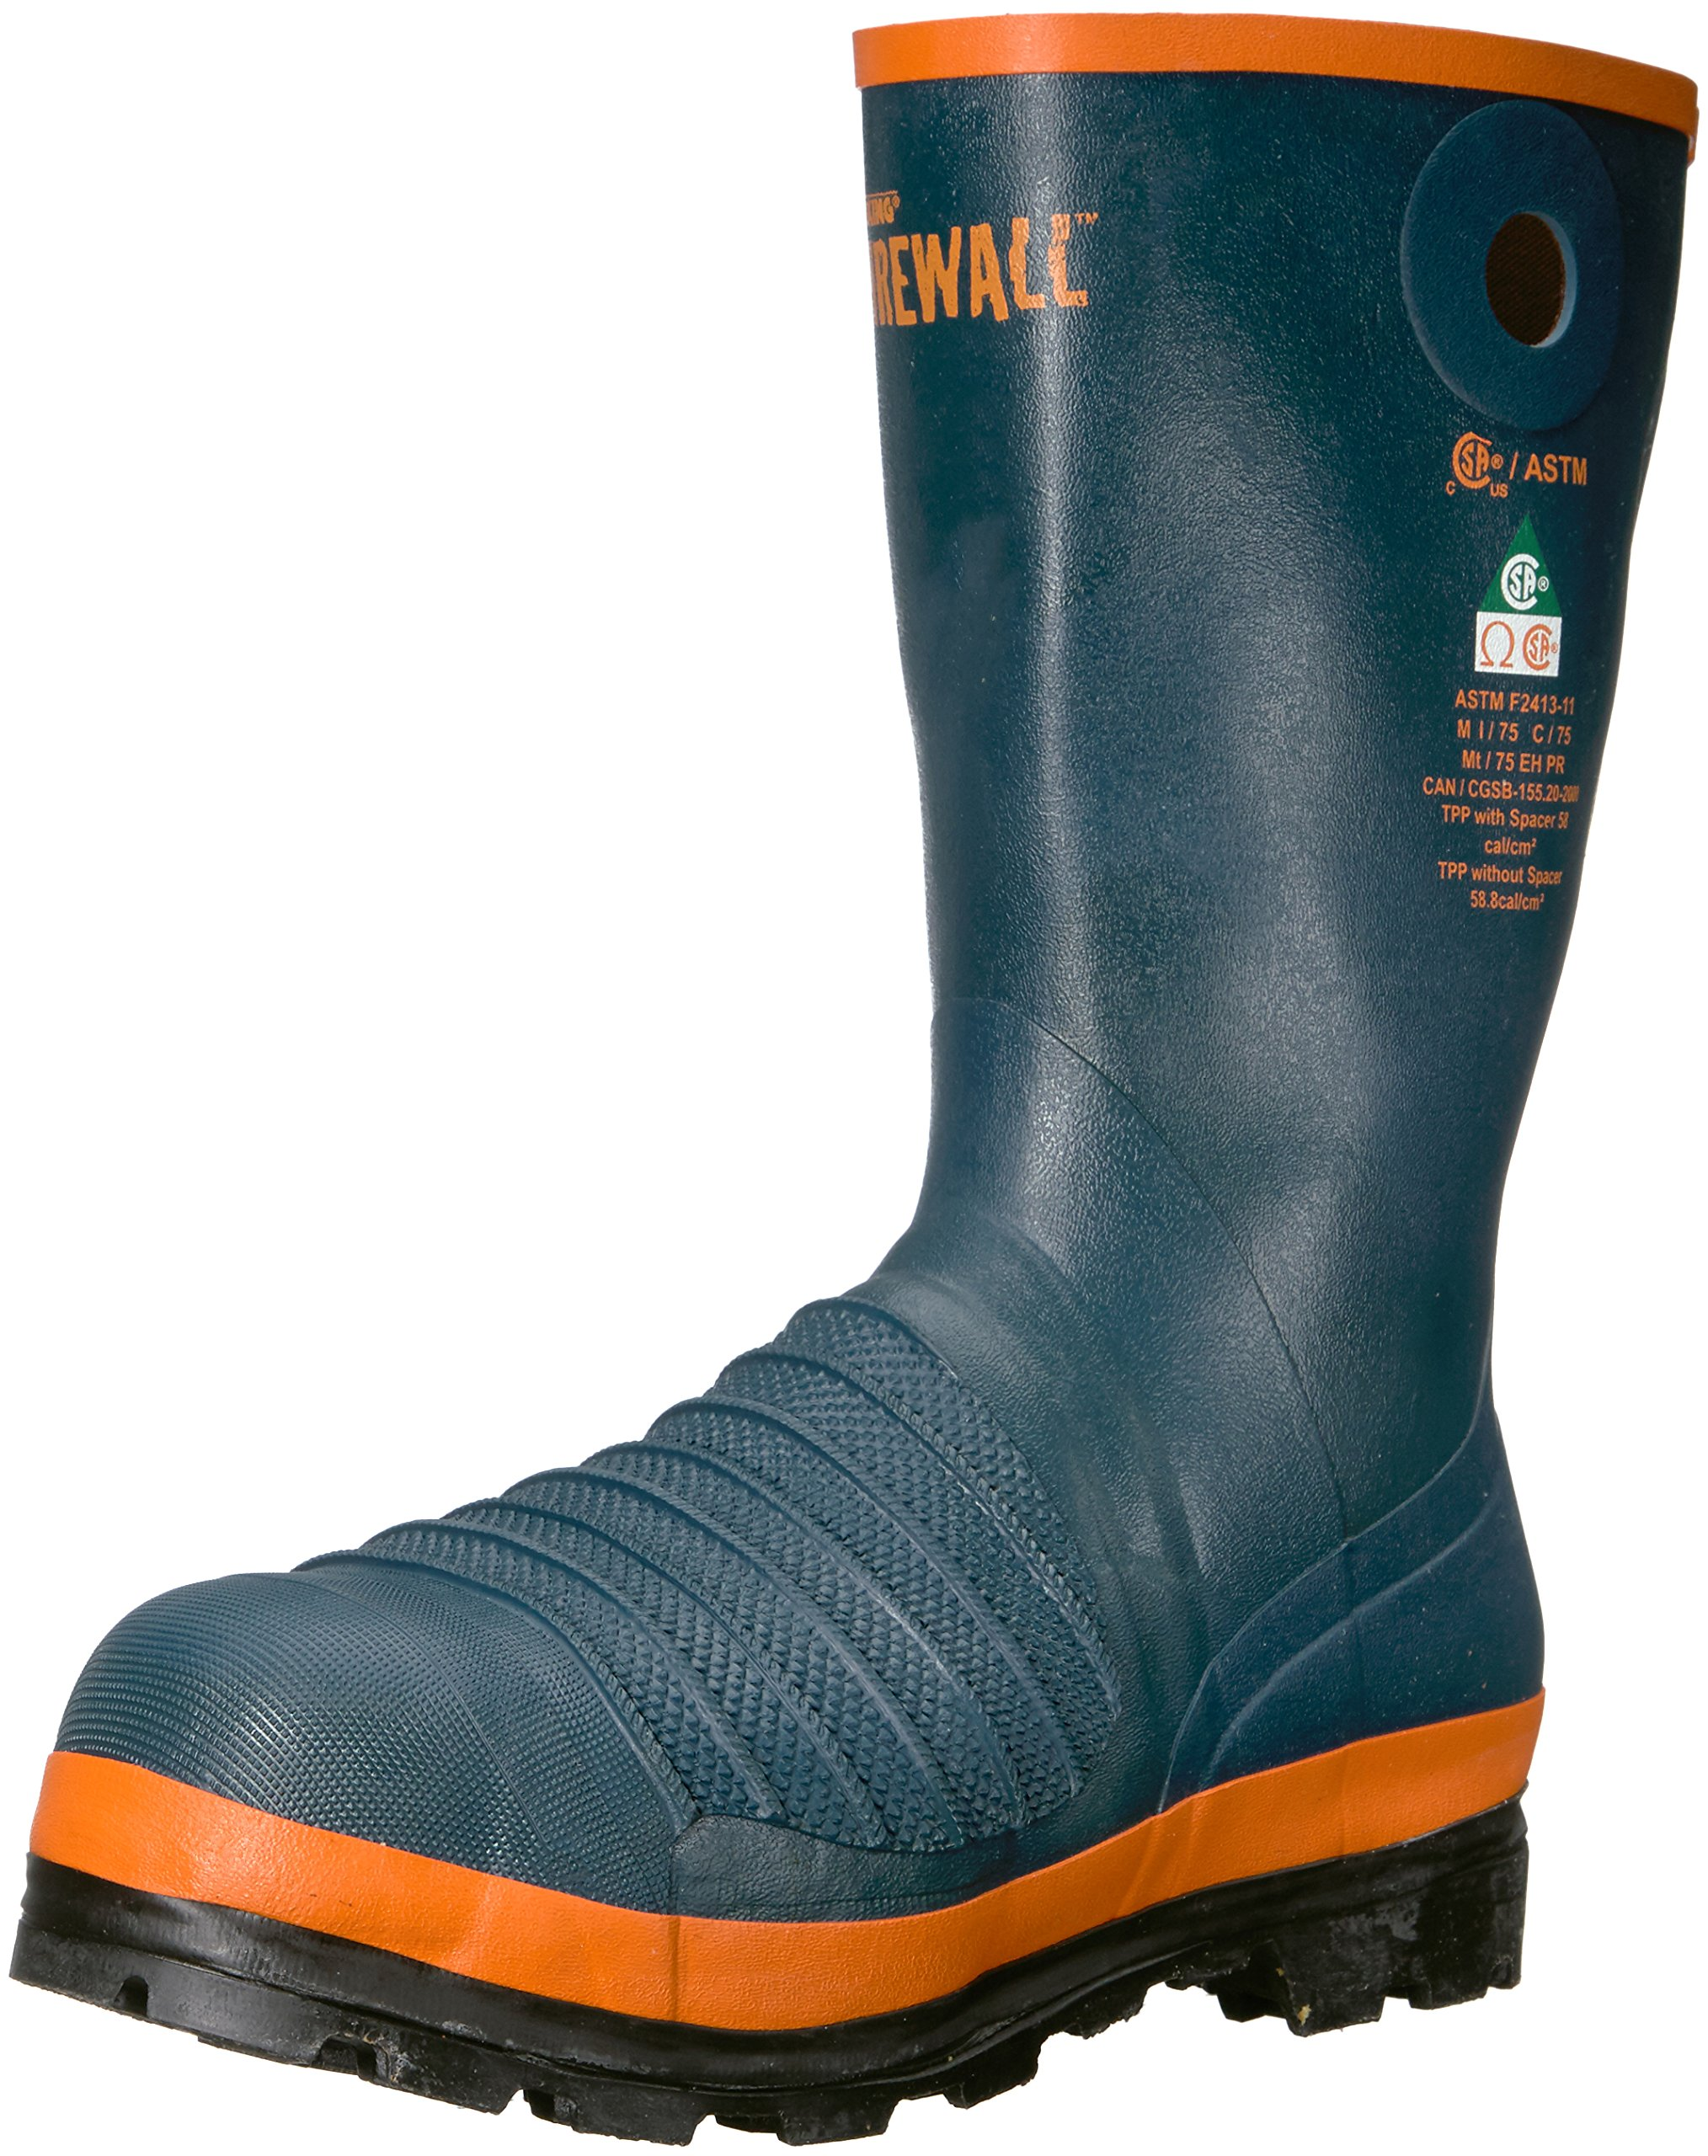 Viking Footwear Men's Viking Firewall Rigger Boot, Steel Toe and Plate Fire and Safety, Navy 14 M US by Viking Footwear